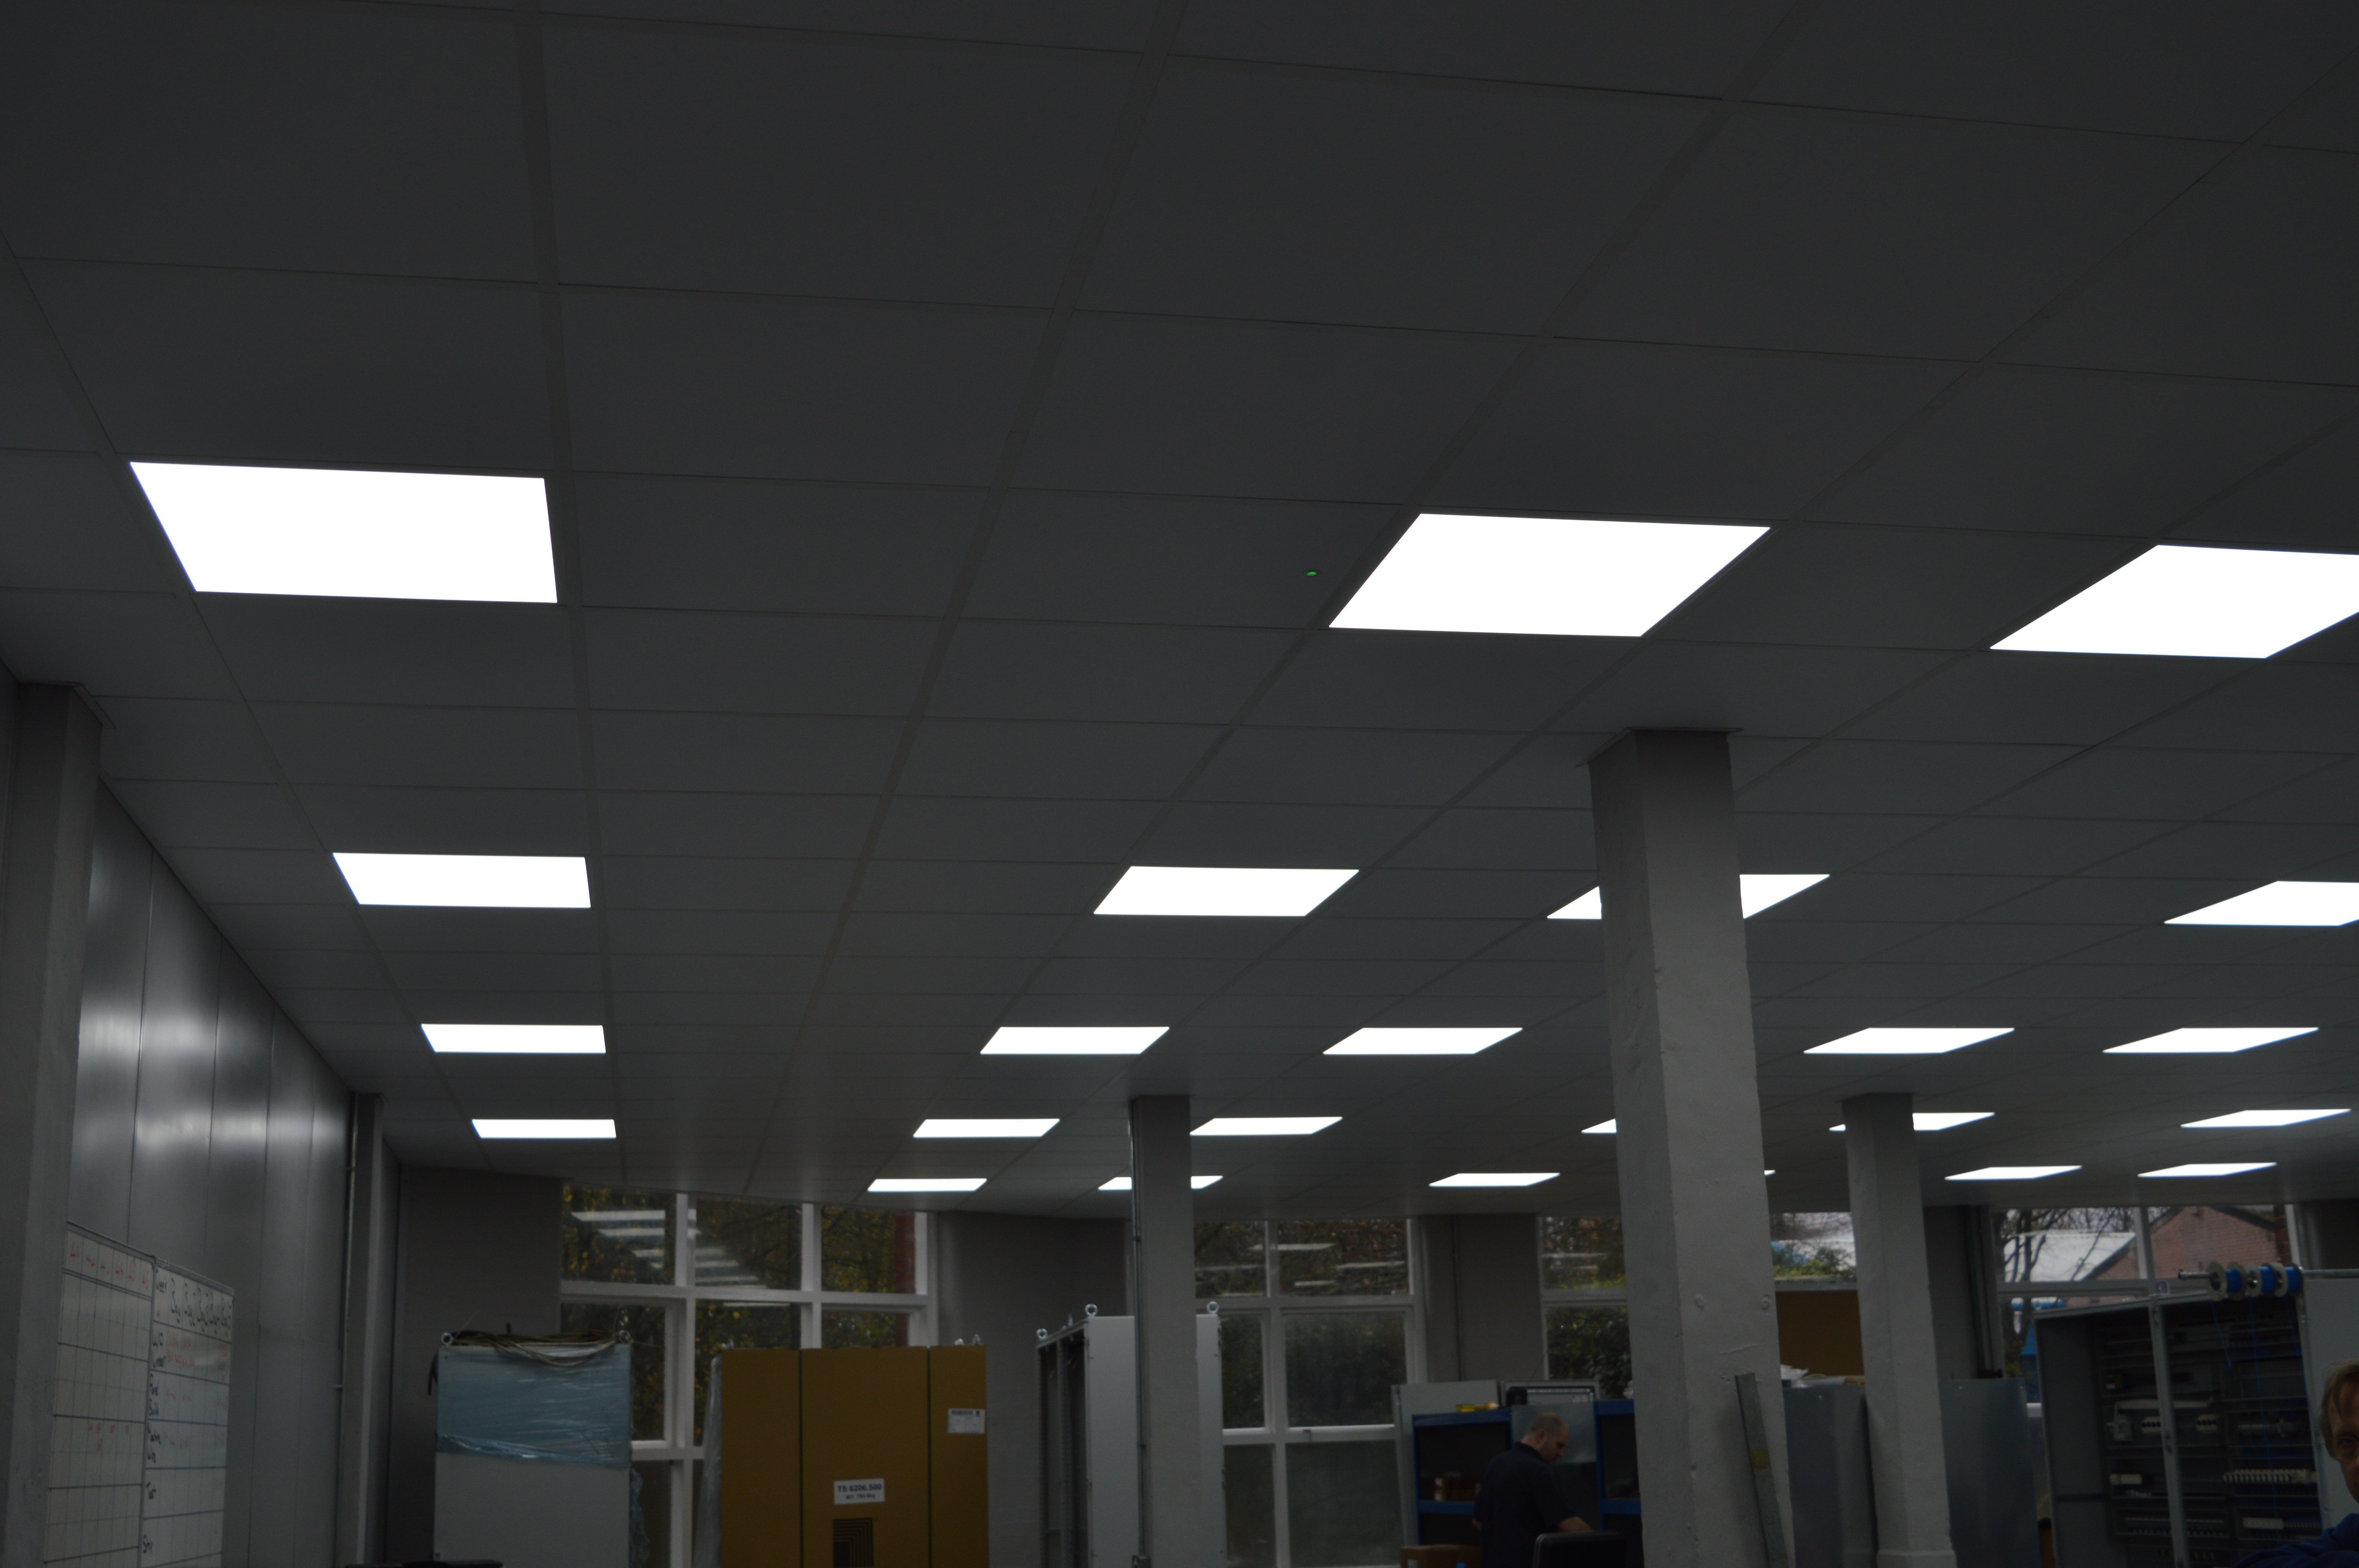 Illuminated square lights in a suspended ceiling